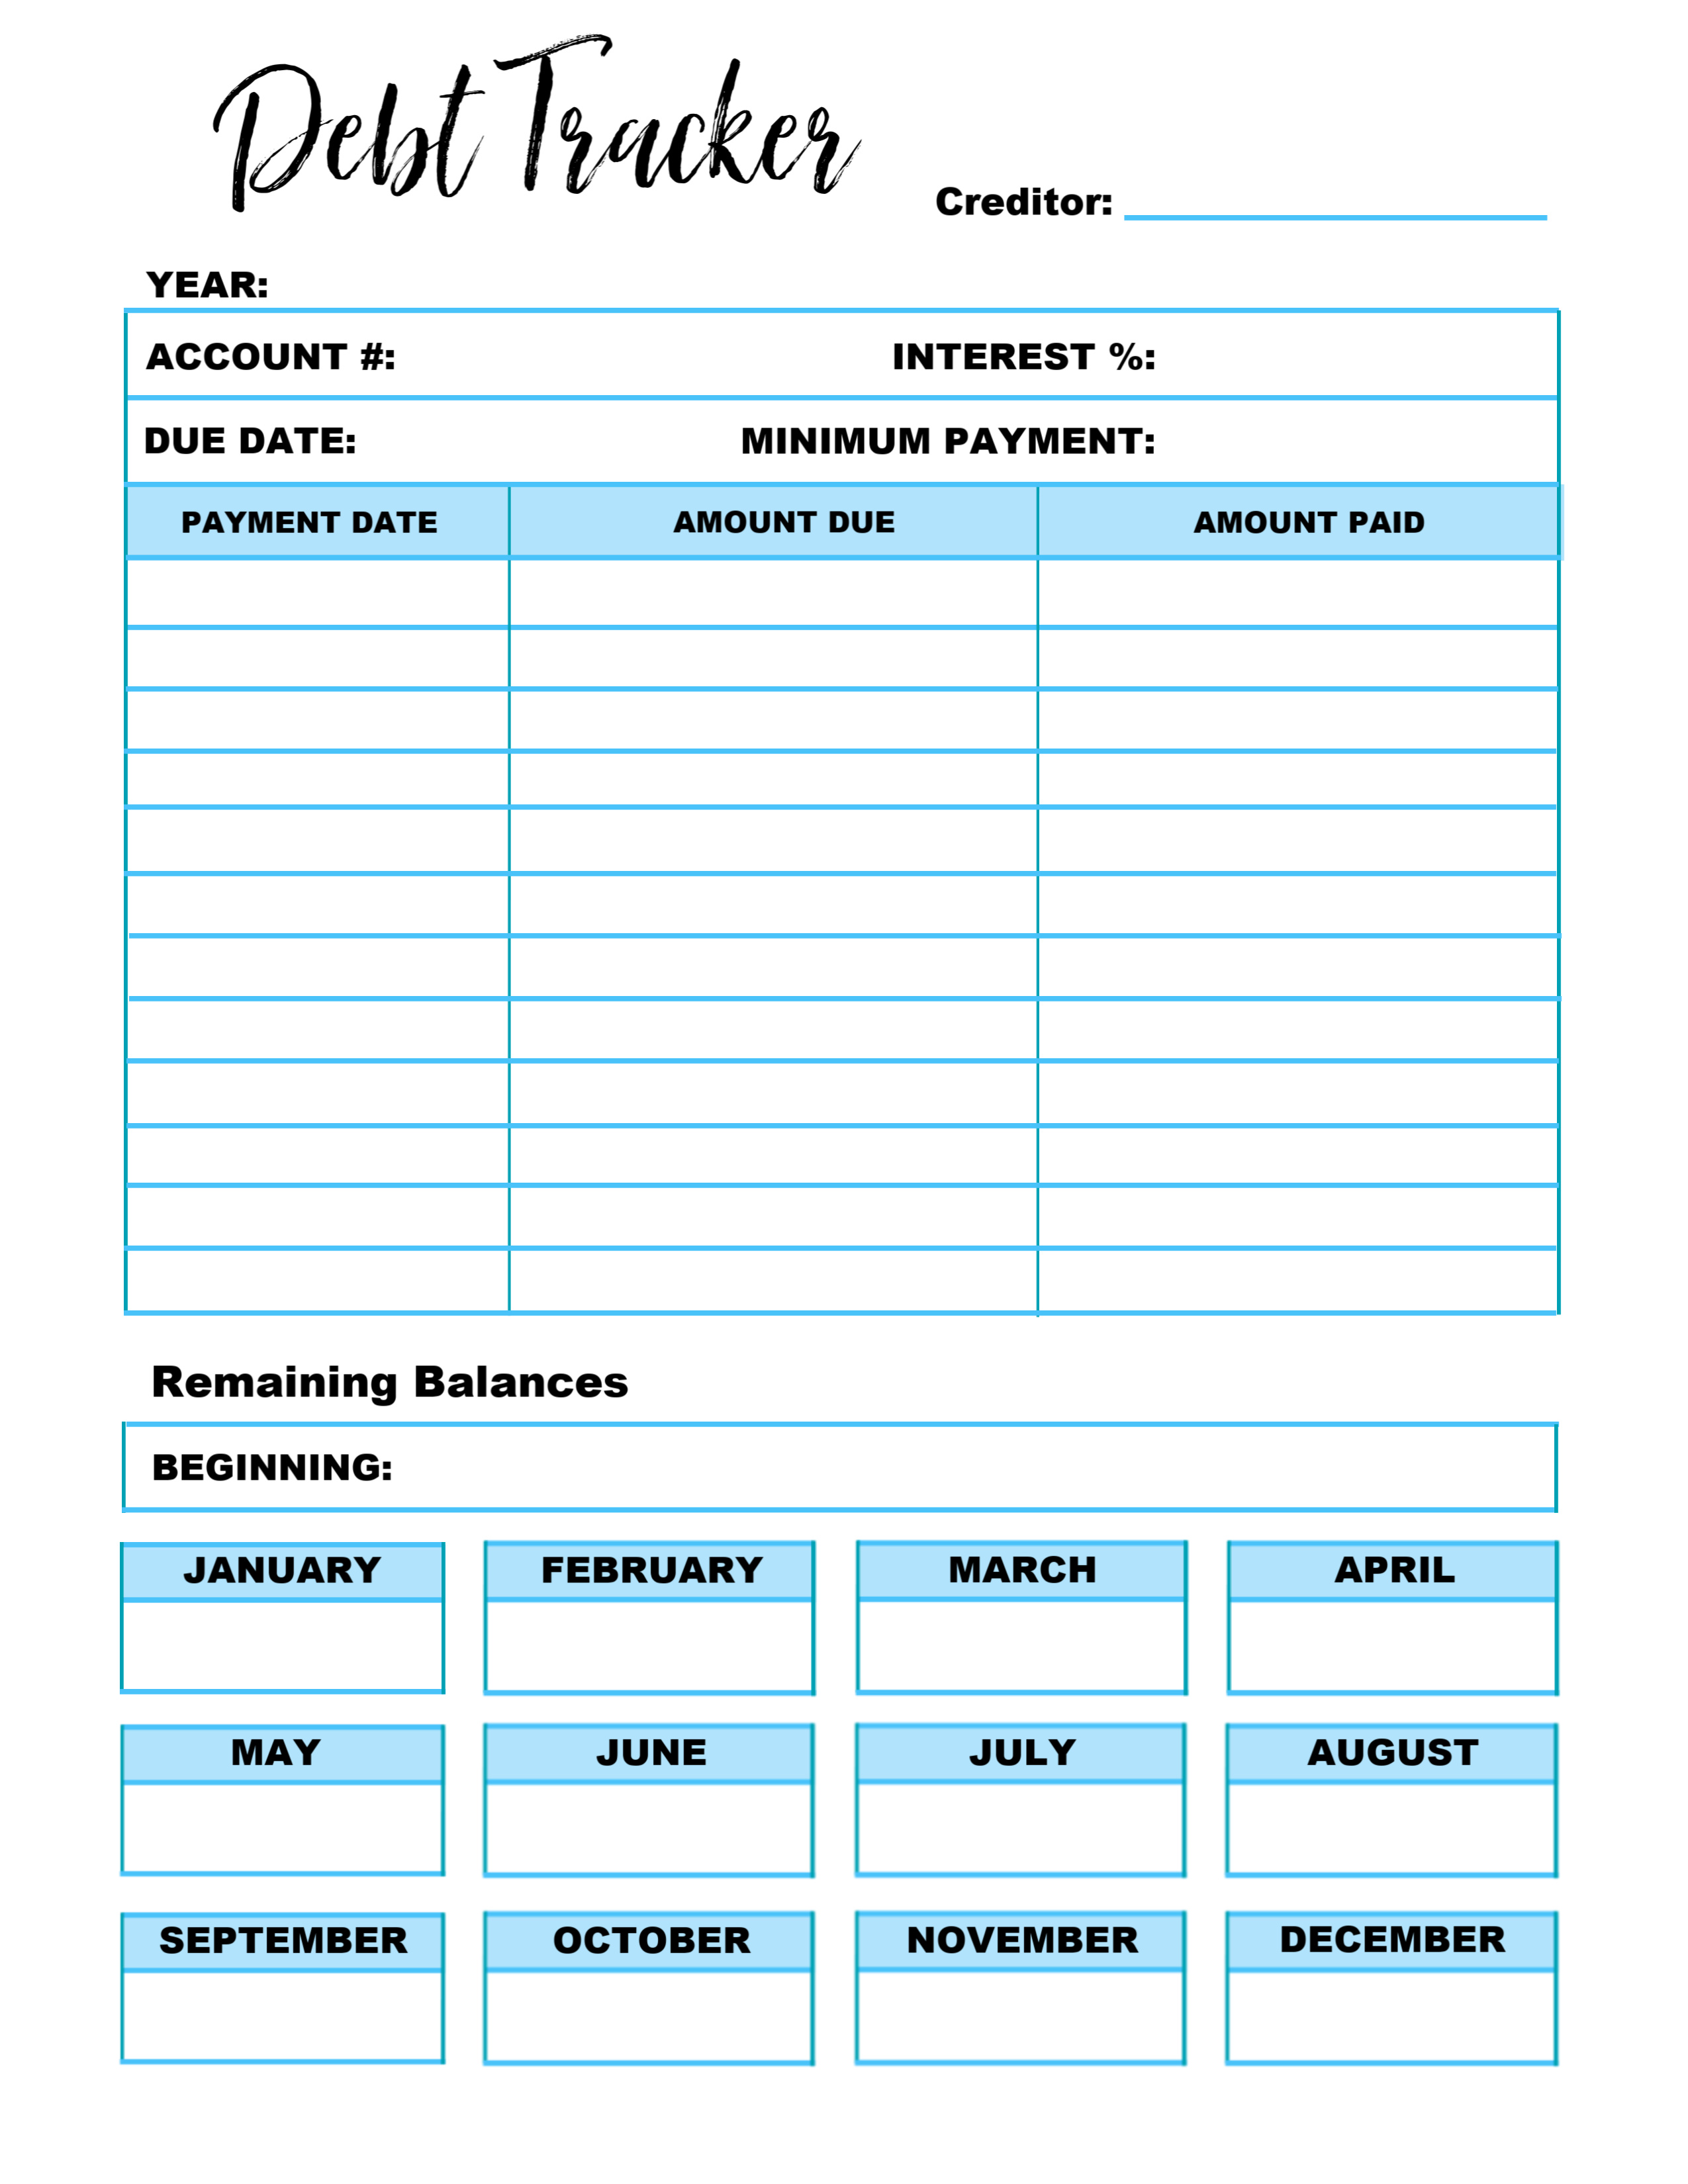 photo regarding Debt Tracker Printable identify Spending plan Printable Collection - Credit card debt Tracker ~ The Frugal Sisters